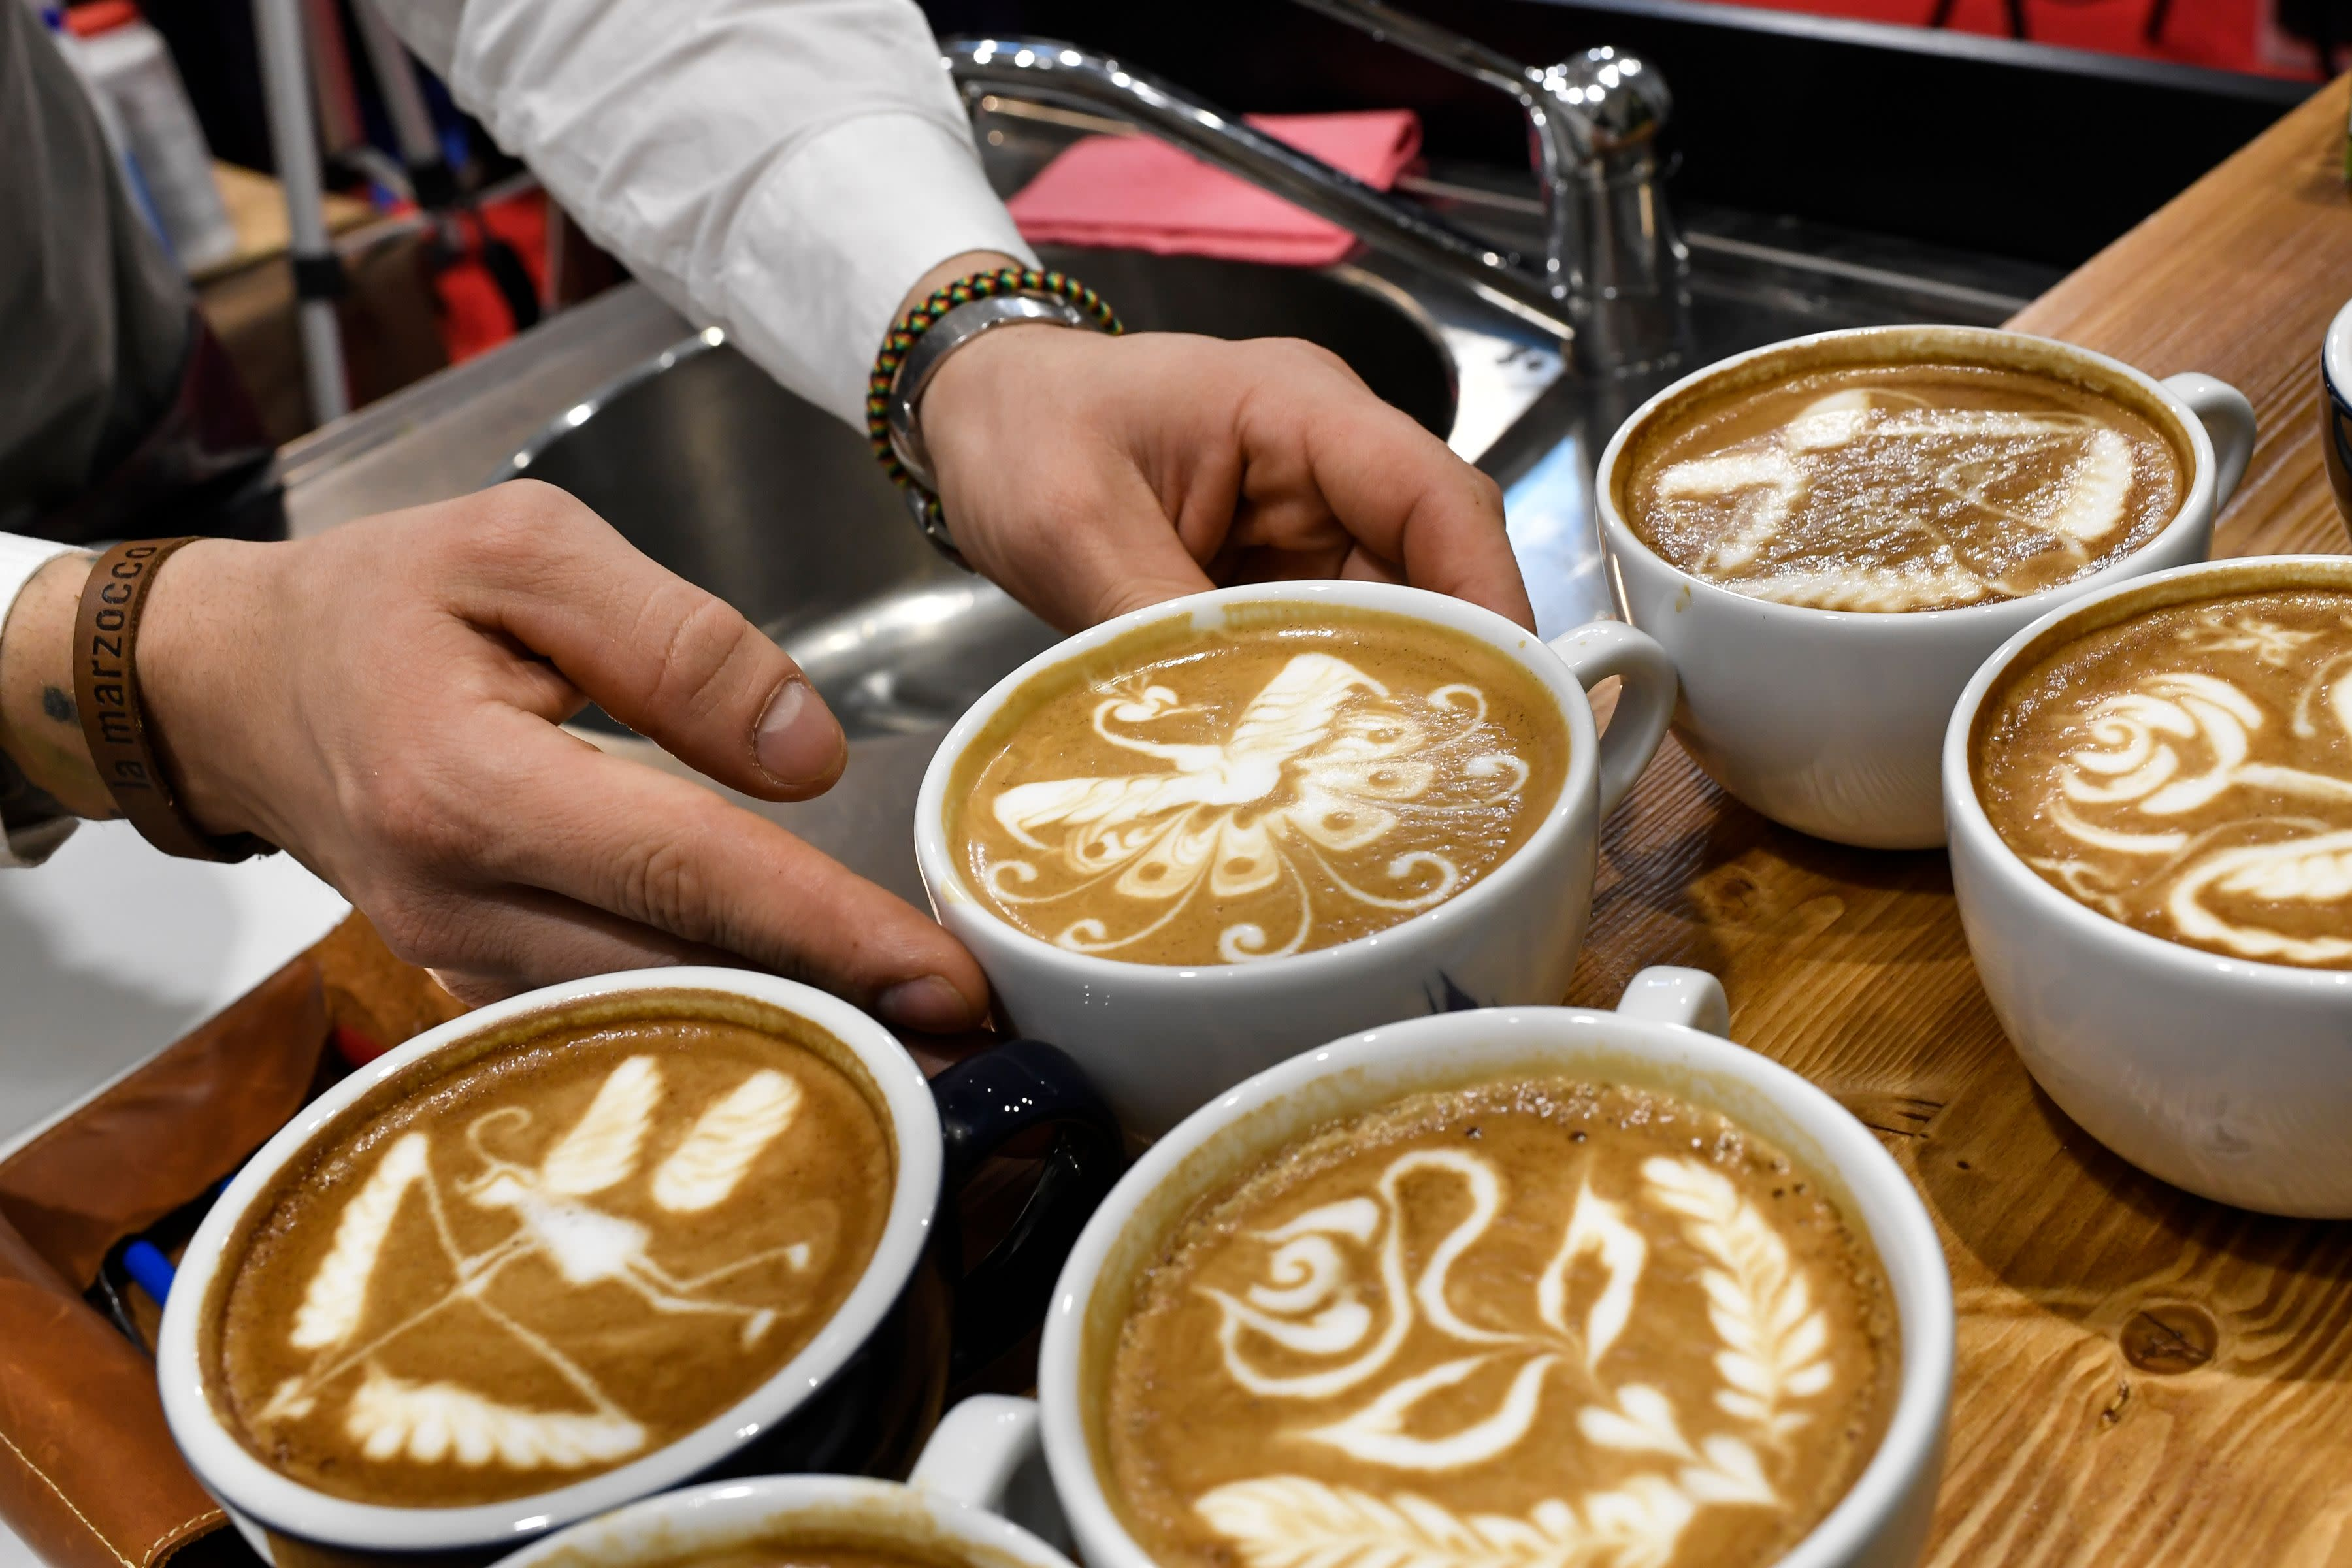 11 cheapest cities in the world for a cappuccino: Is India on this list? Find out